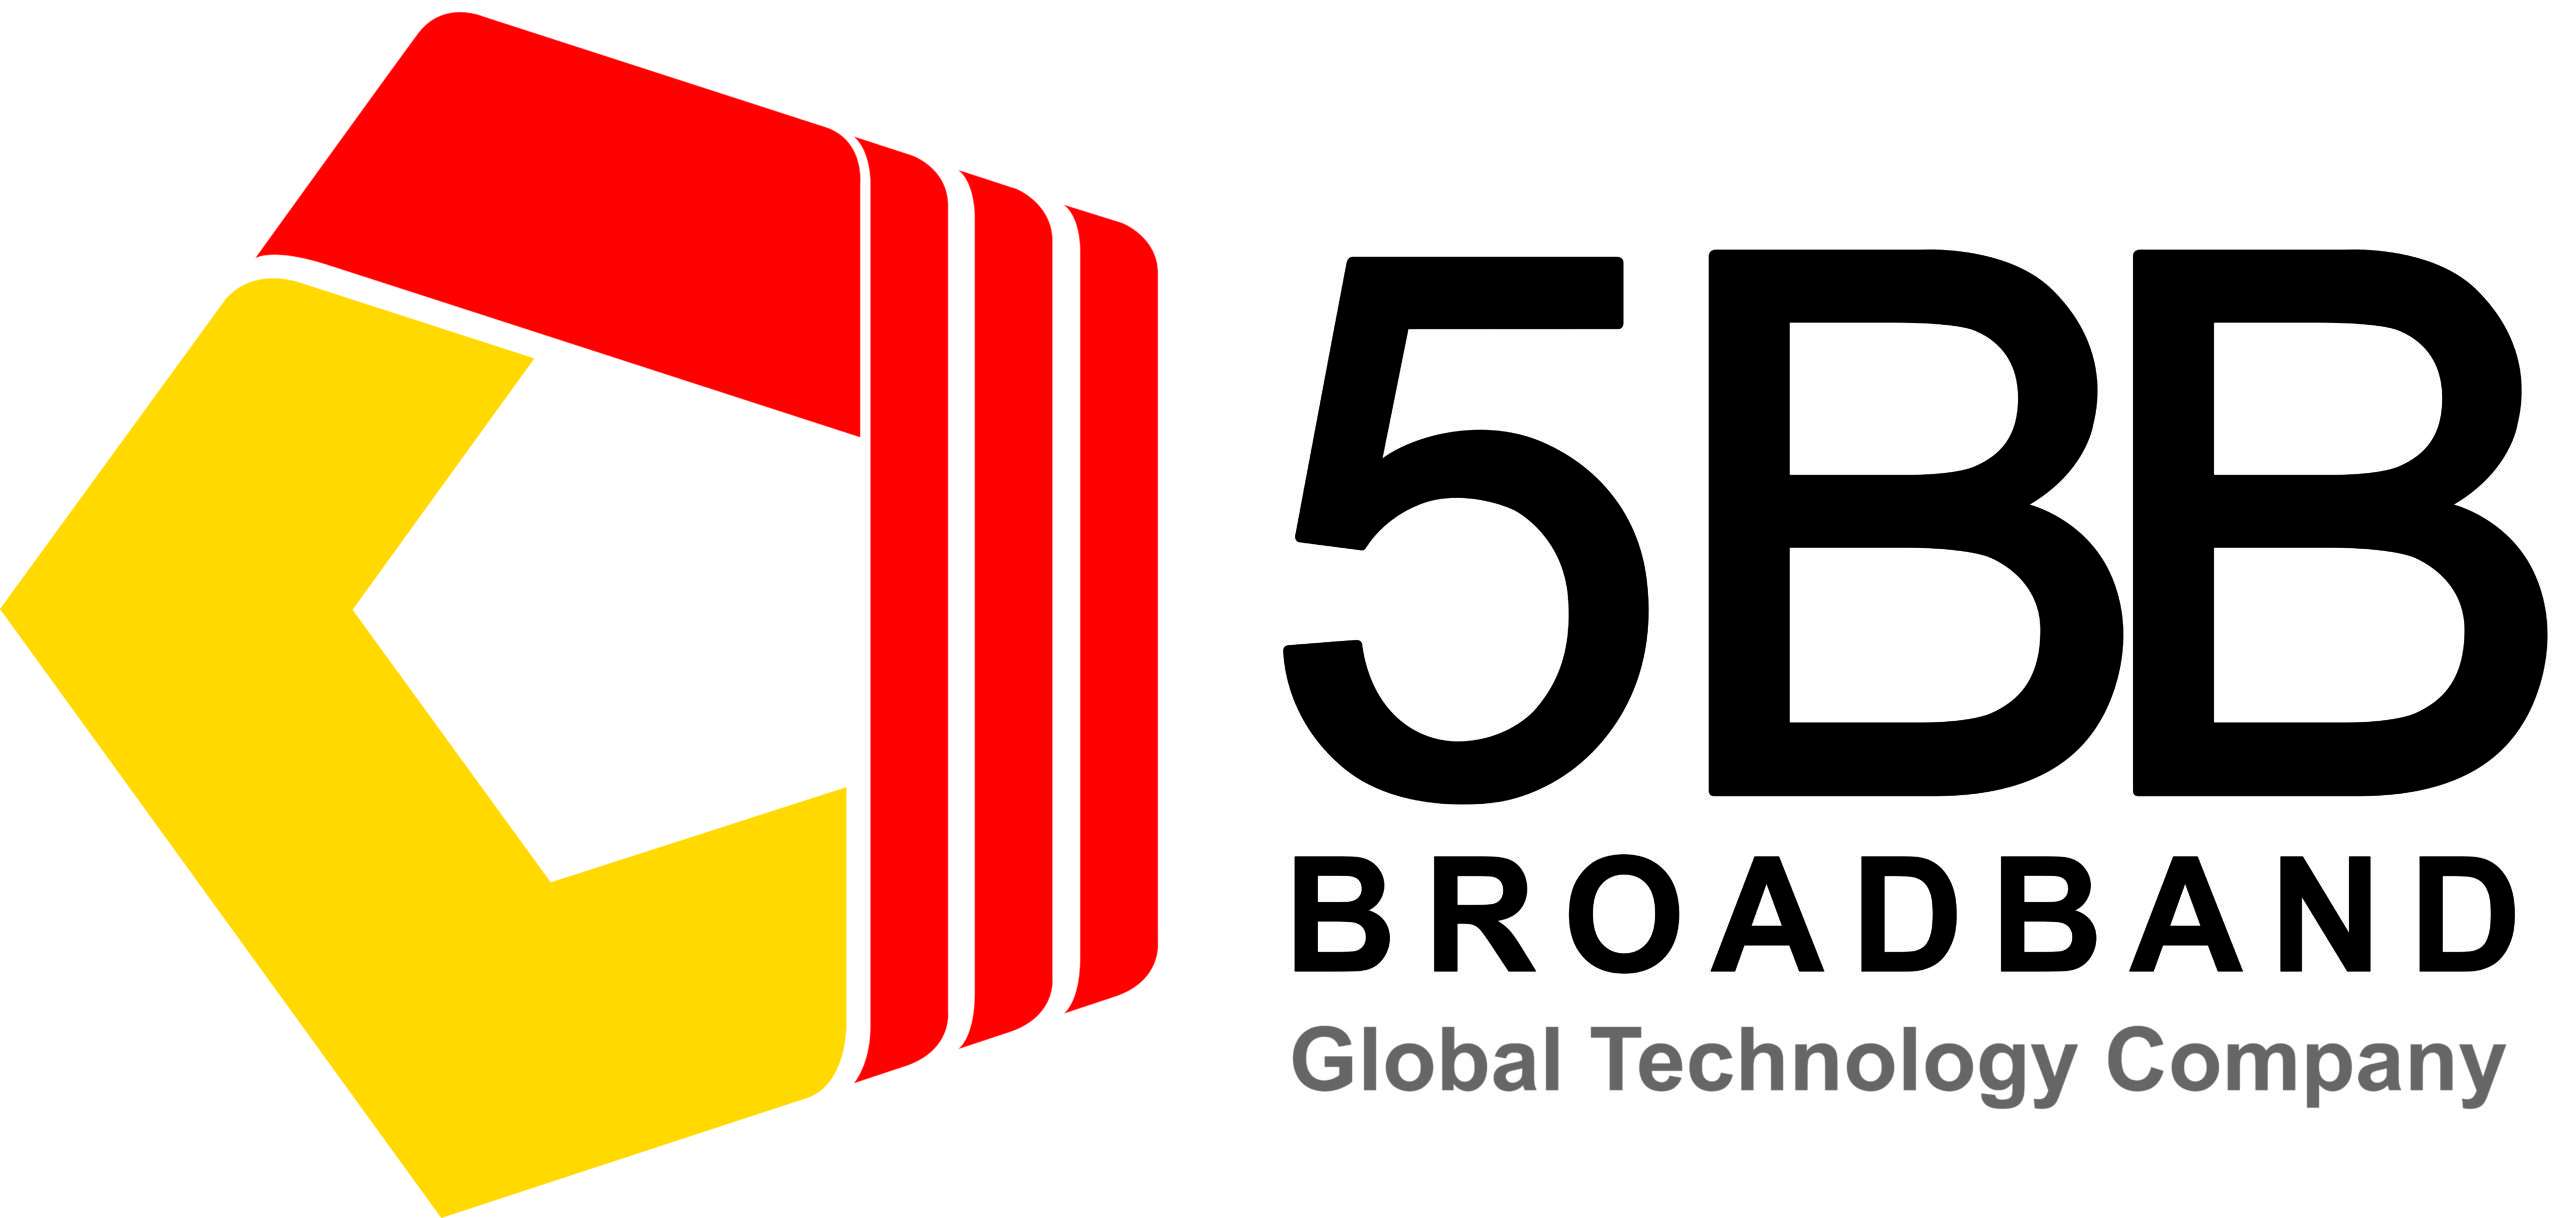 Internet Access Partner - 5BB Final Logo with Global Technology Co